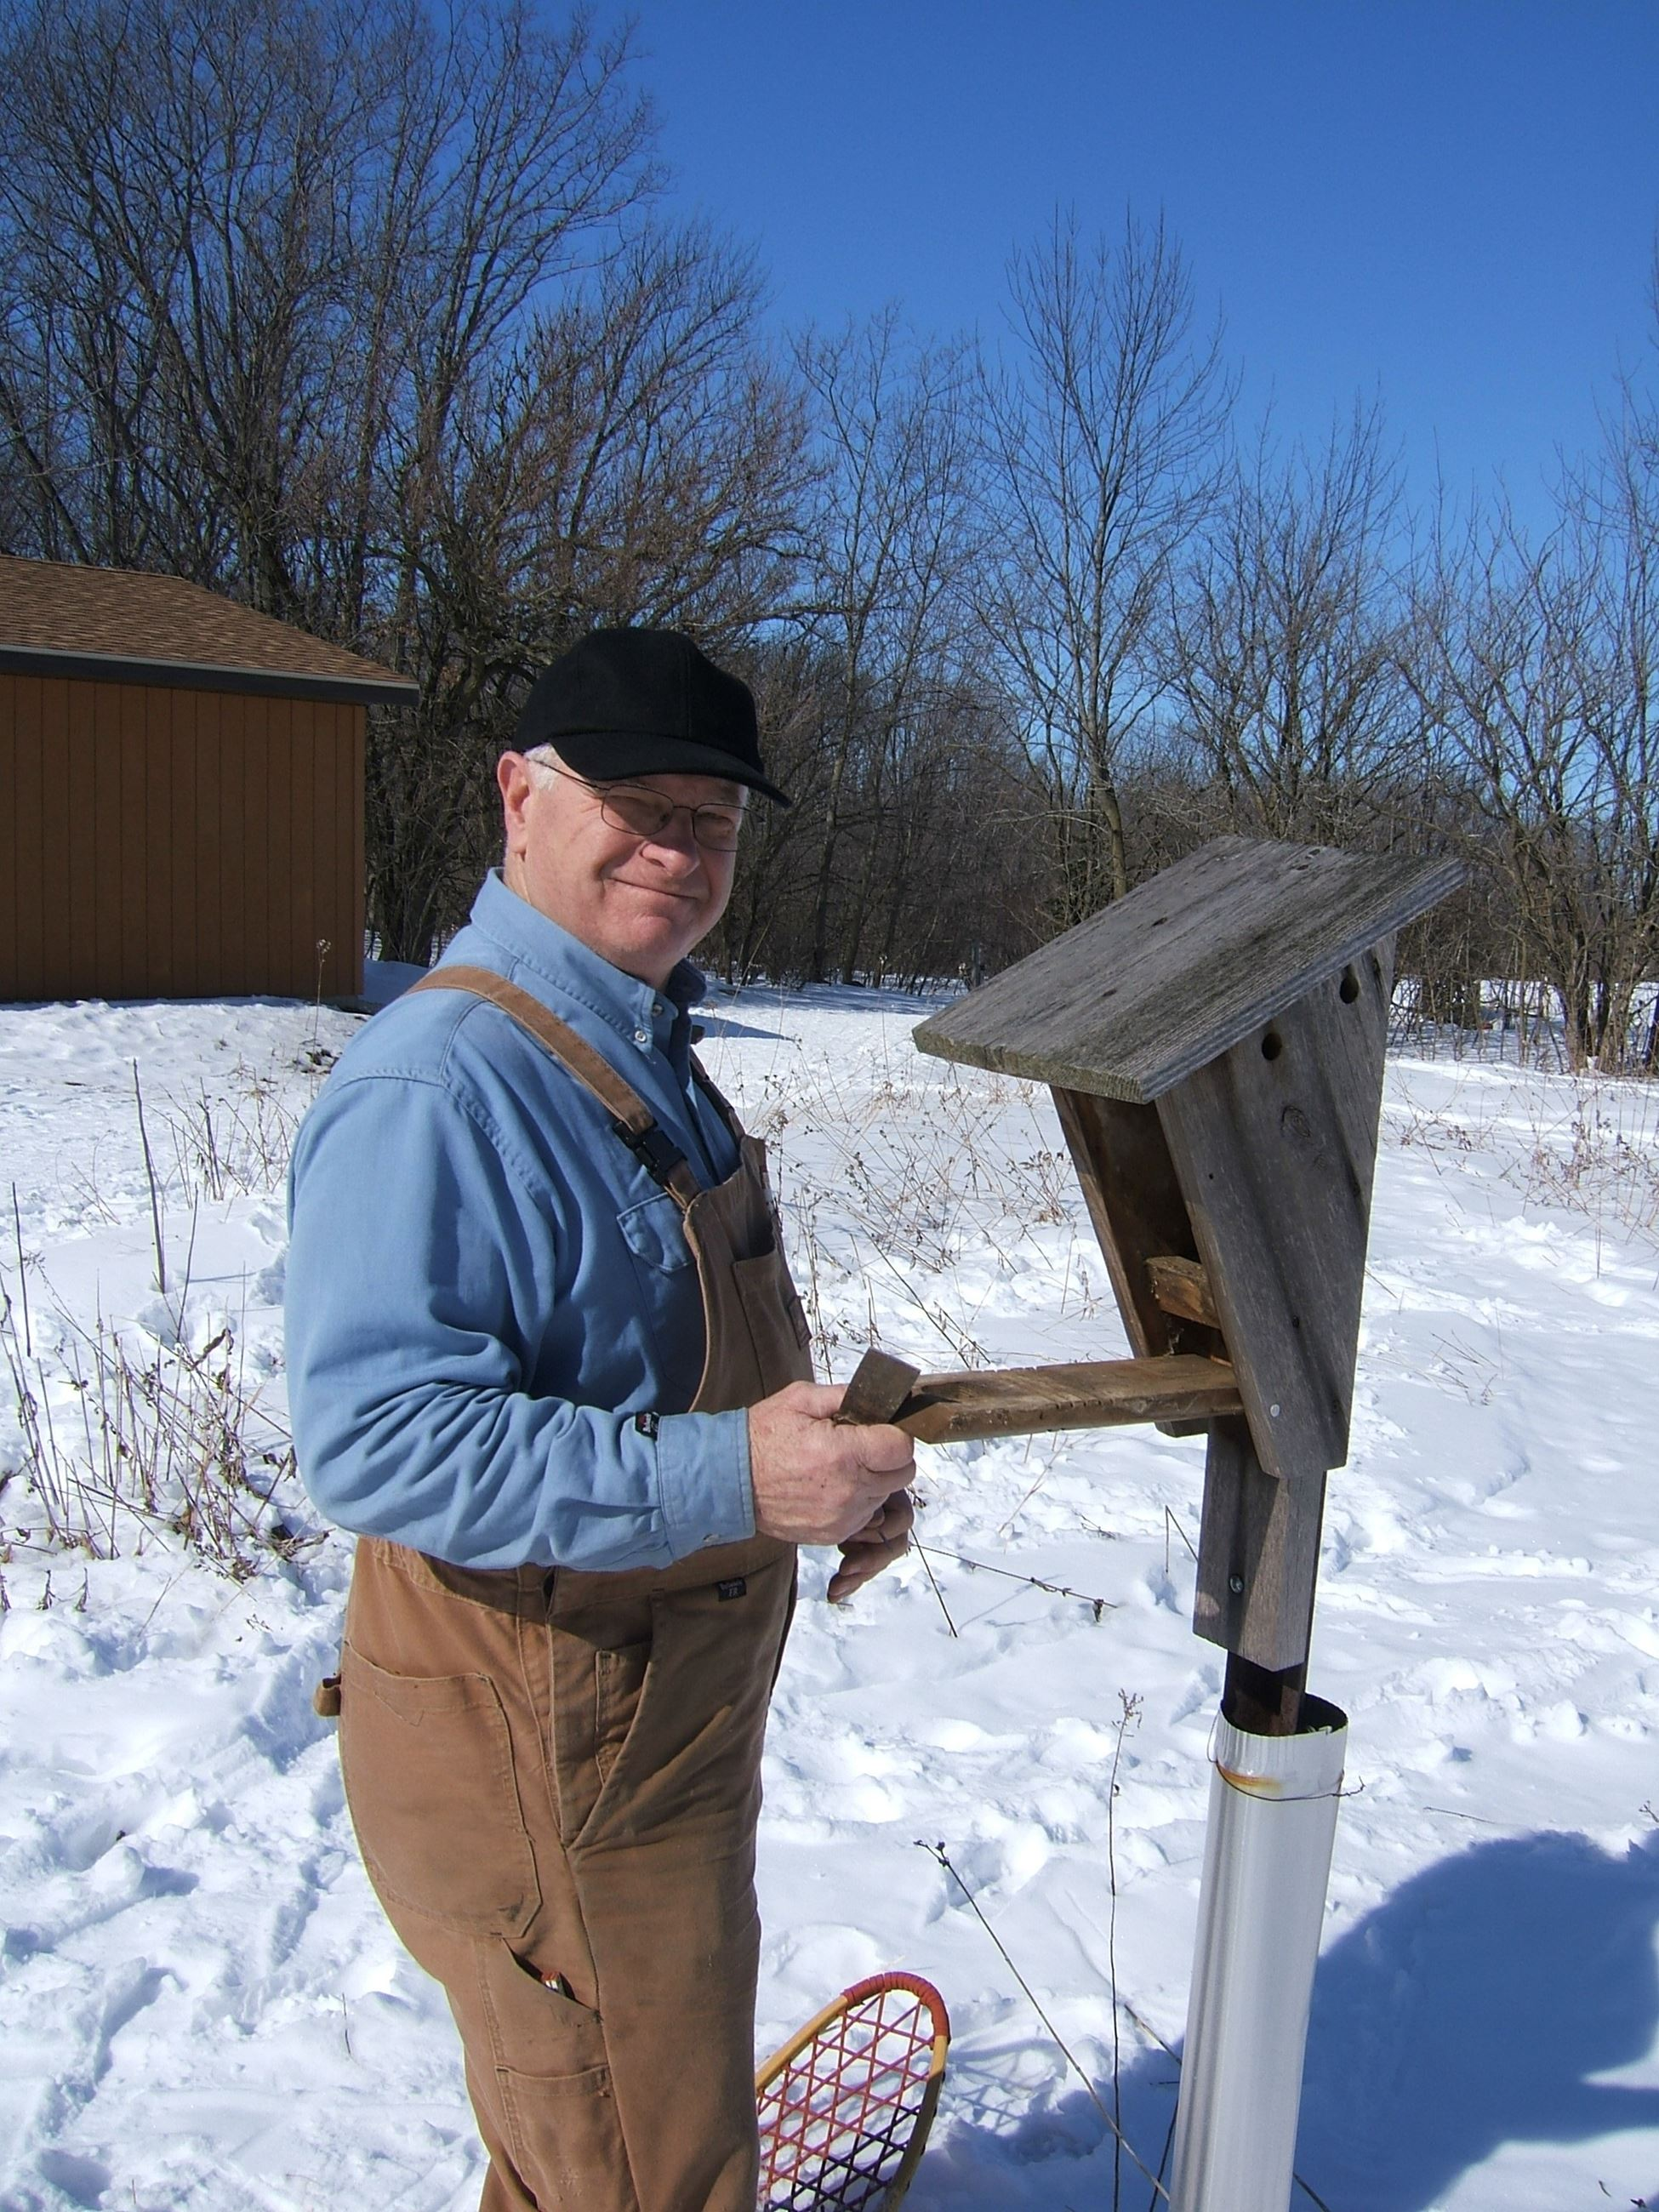 a picture of a man next to a bluebird house